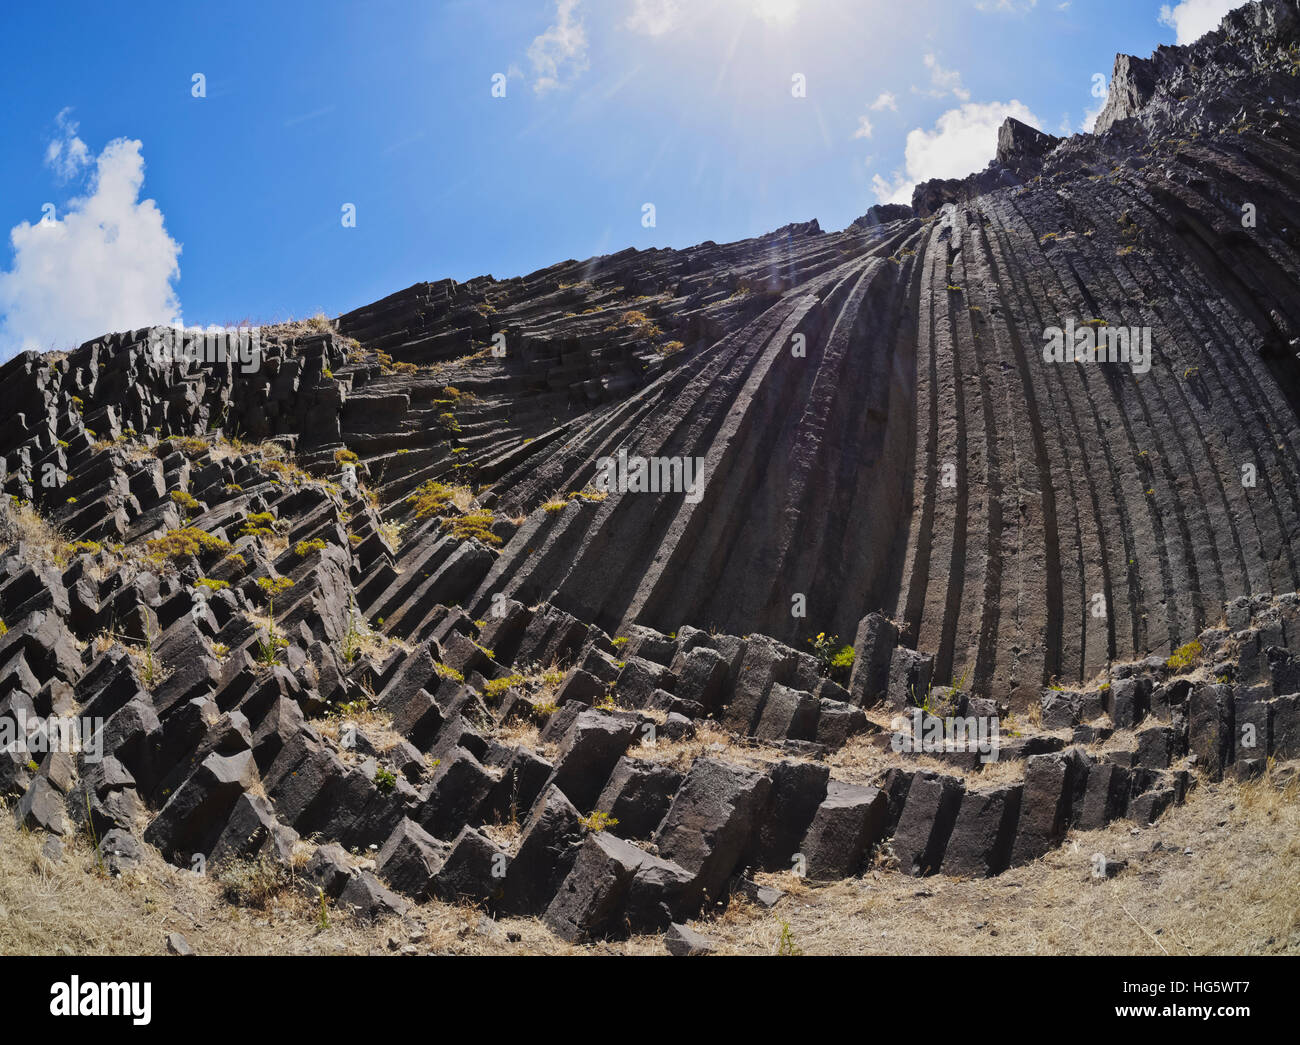 Portugal, Madeira Islands, Porto Santo, Low angle view of the Columnar Disjunction of Pico de Ana Ferreira, rock - Stock Image